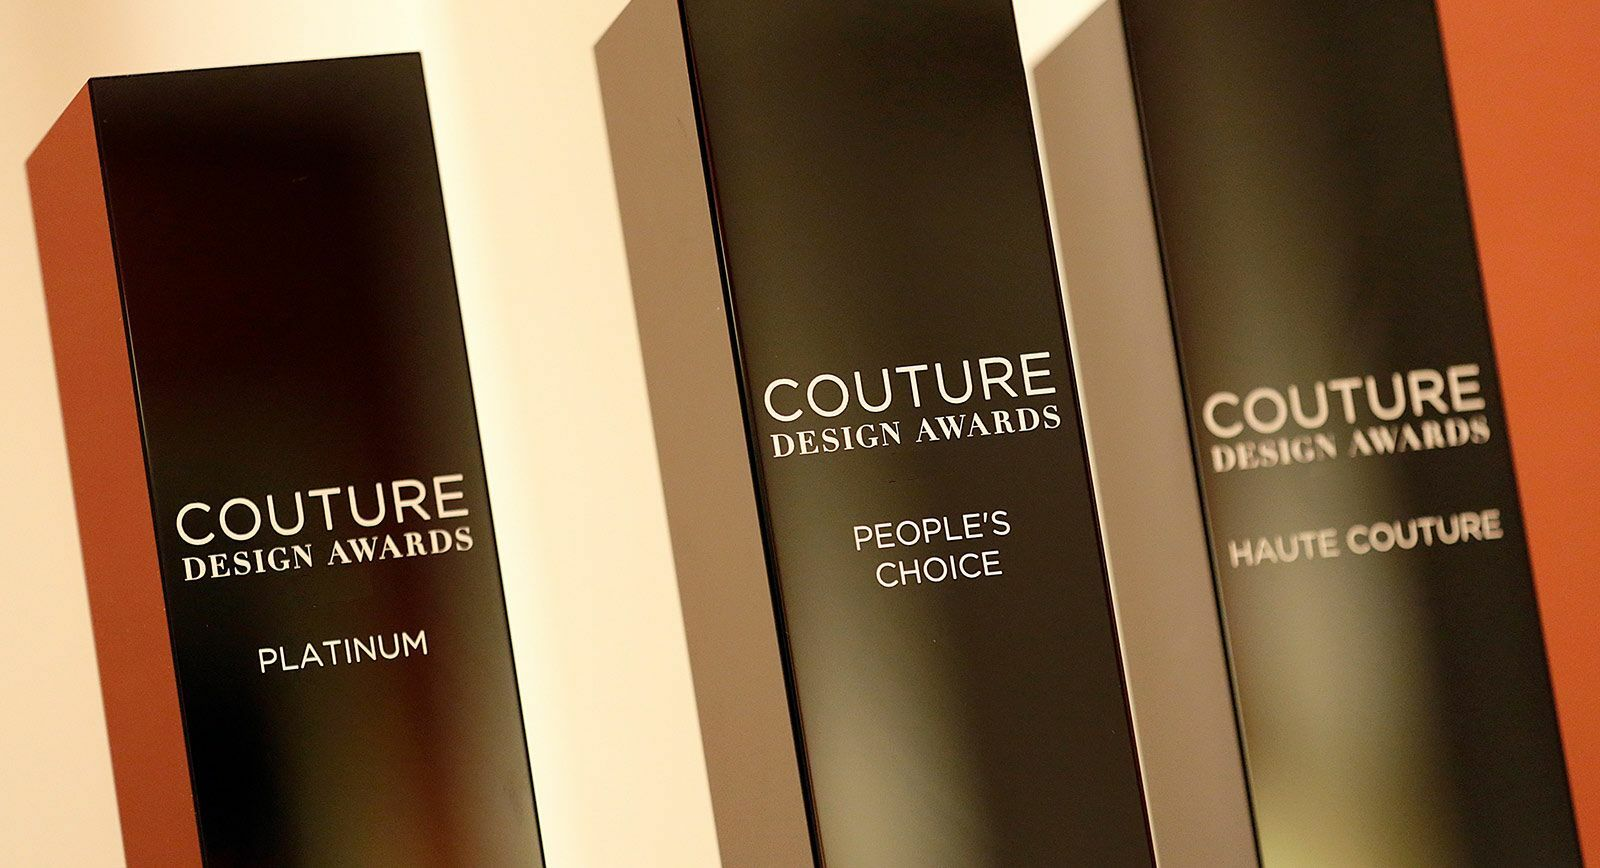 Couture design awards